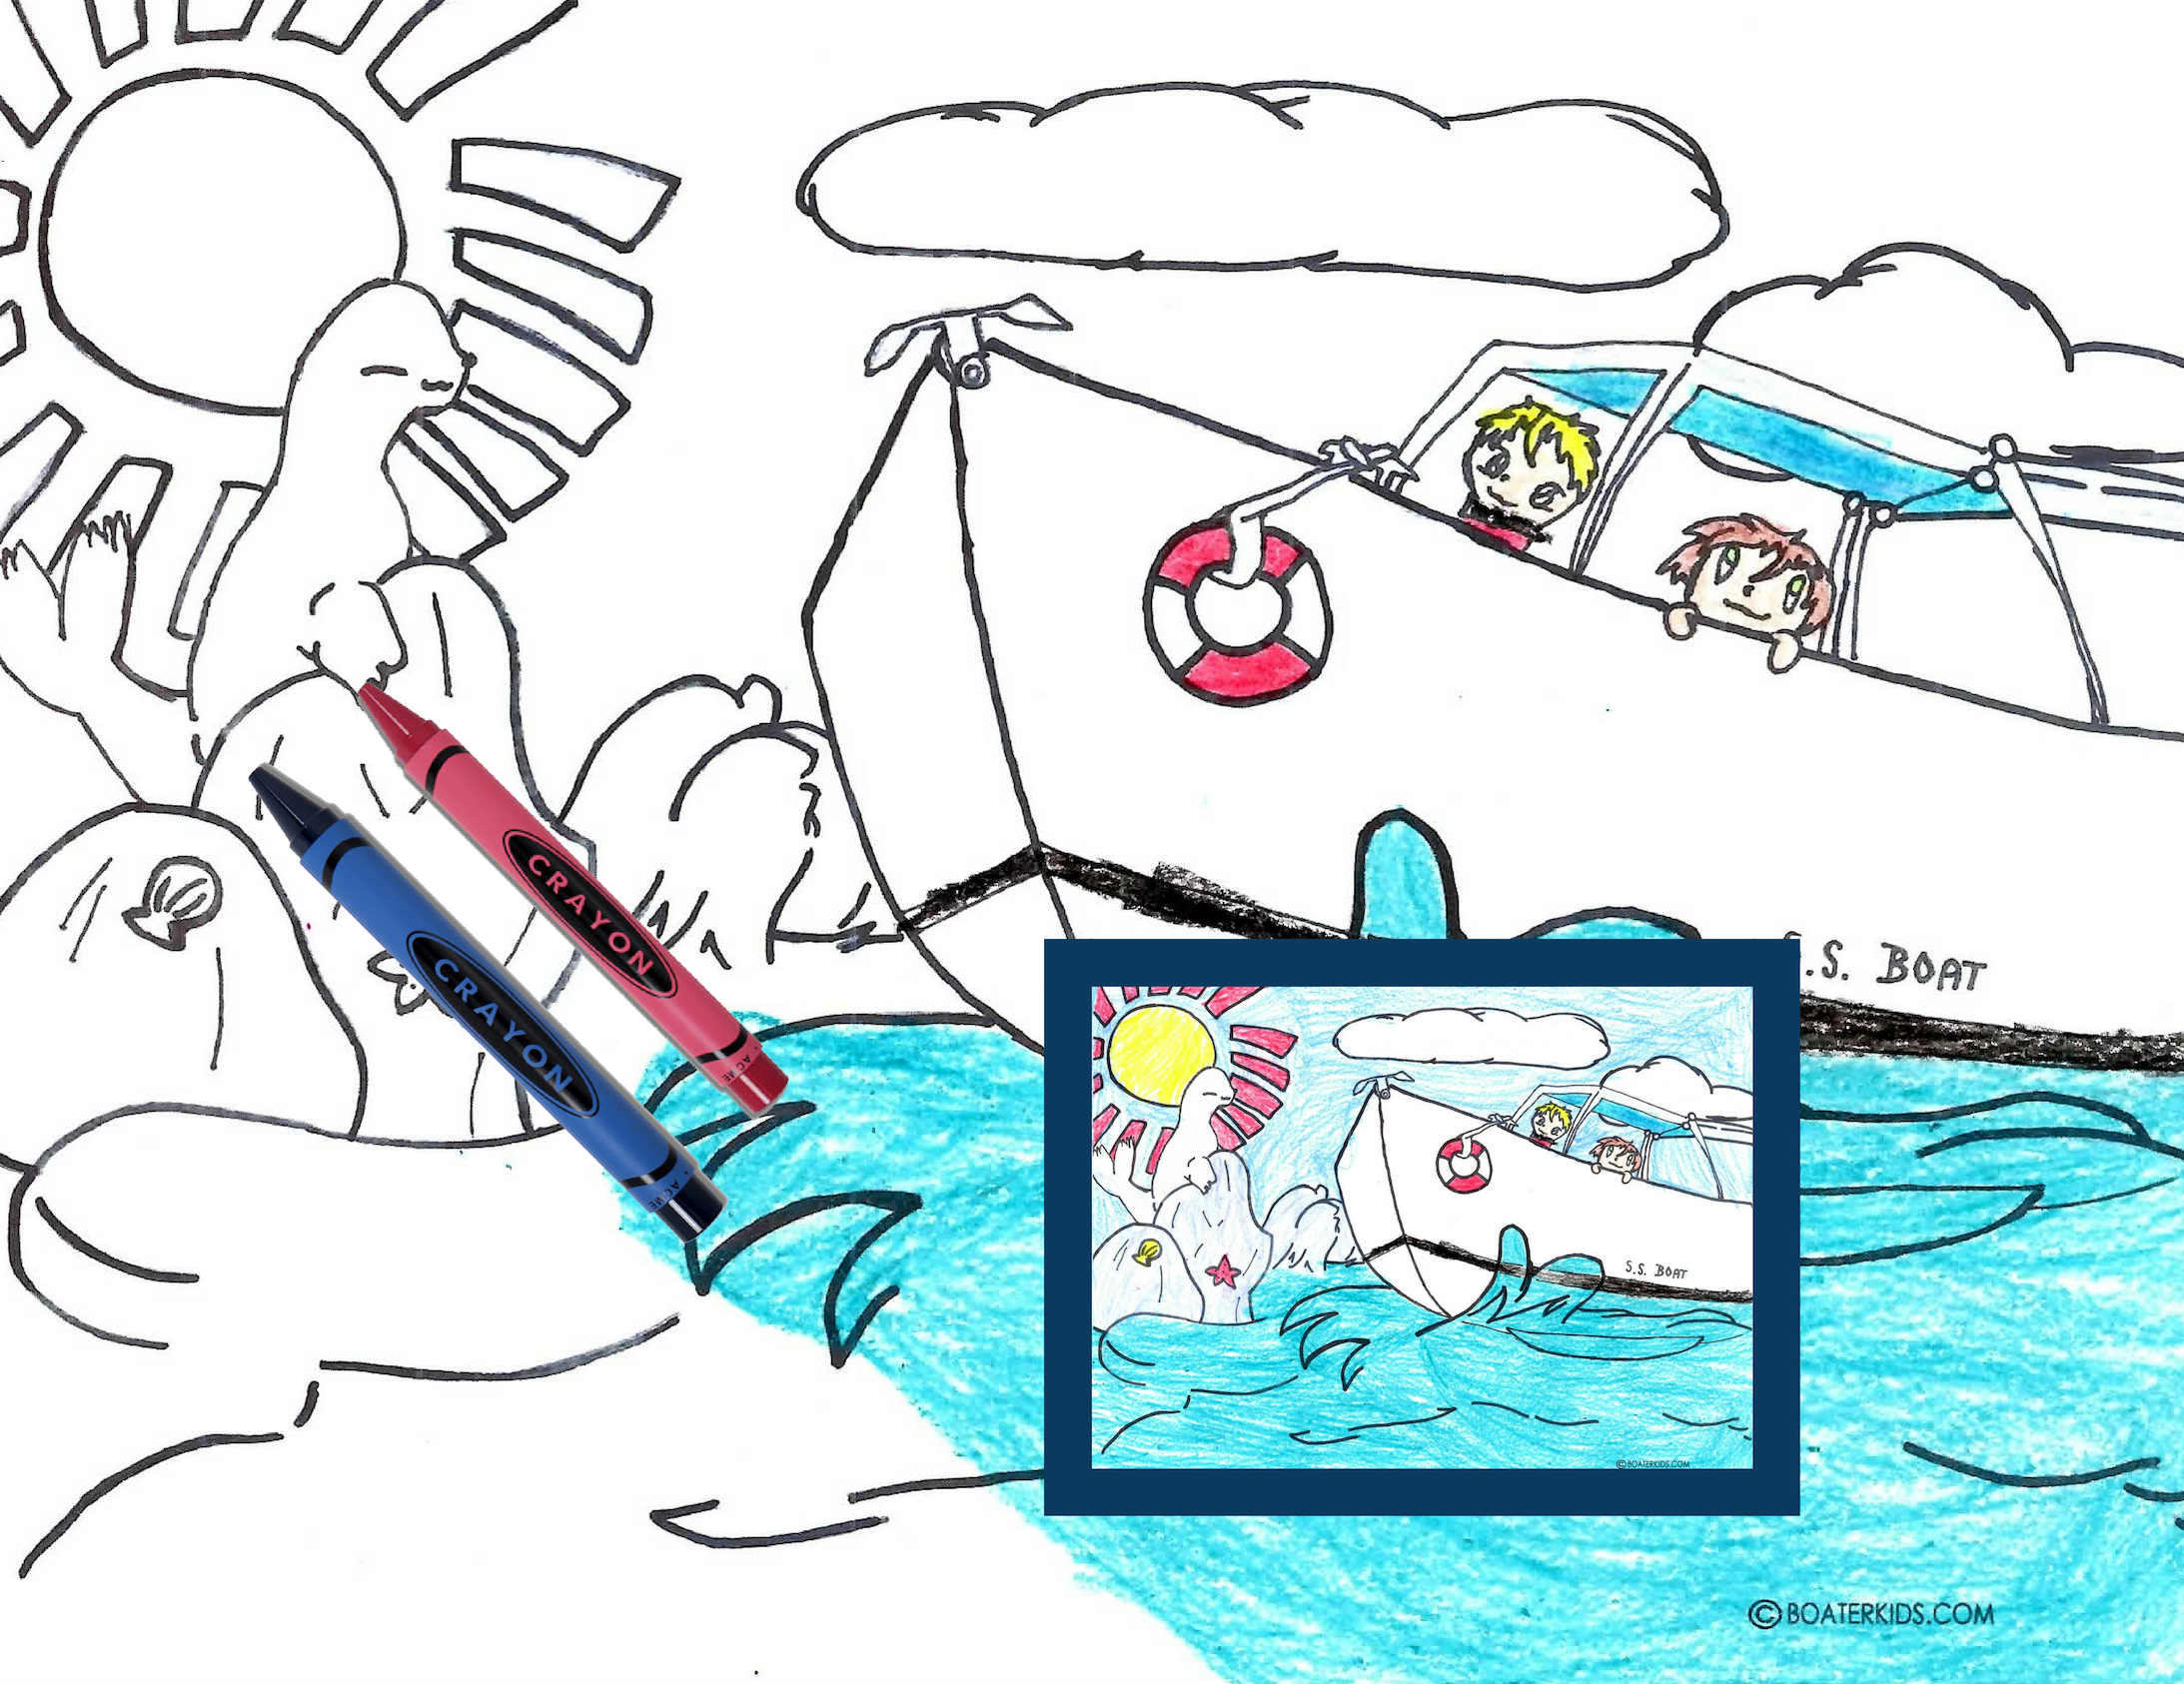 Splashing water boating coloring page for kids